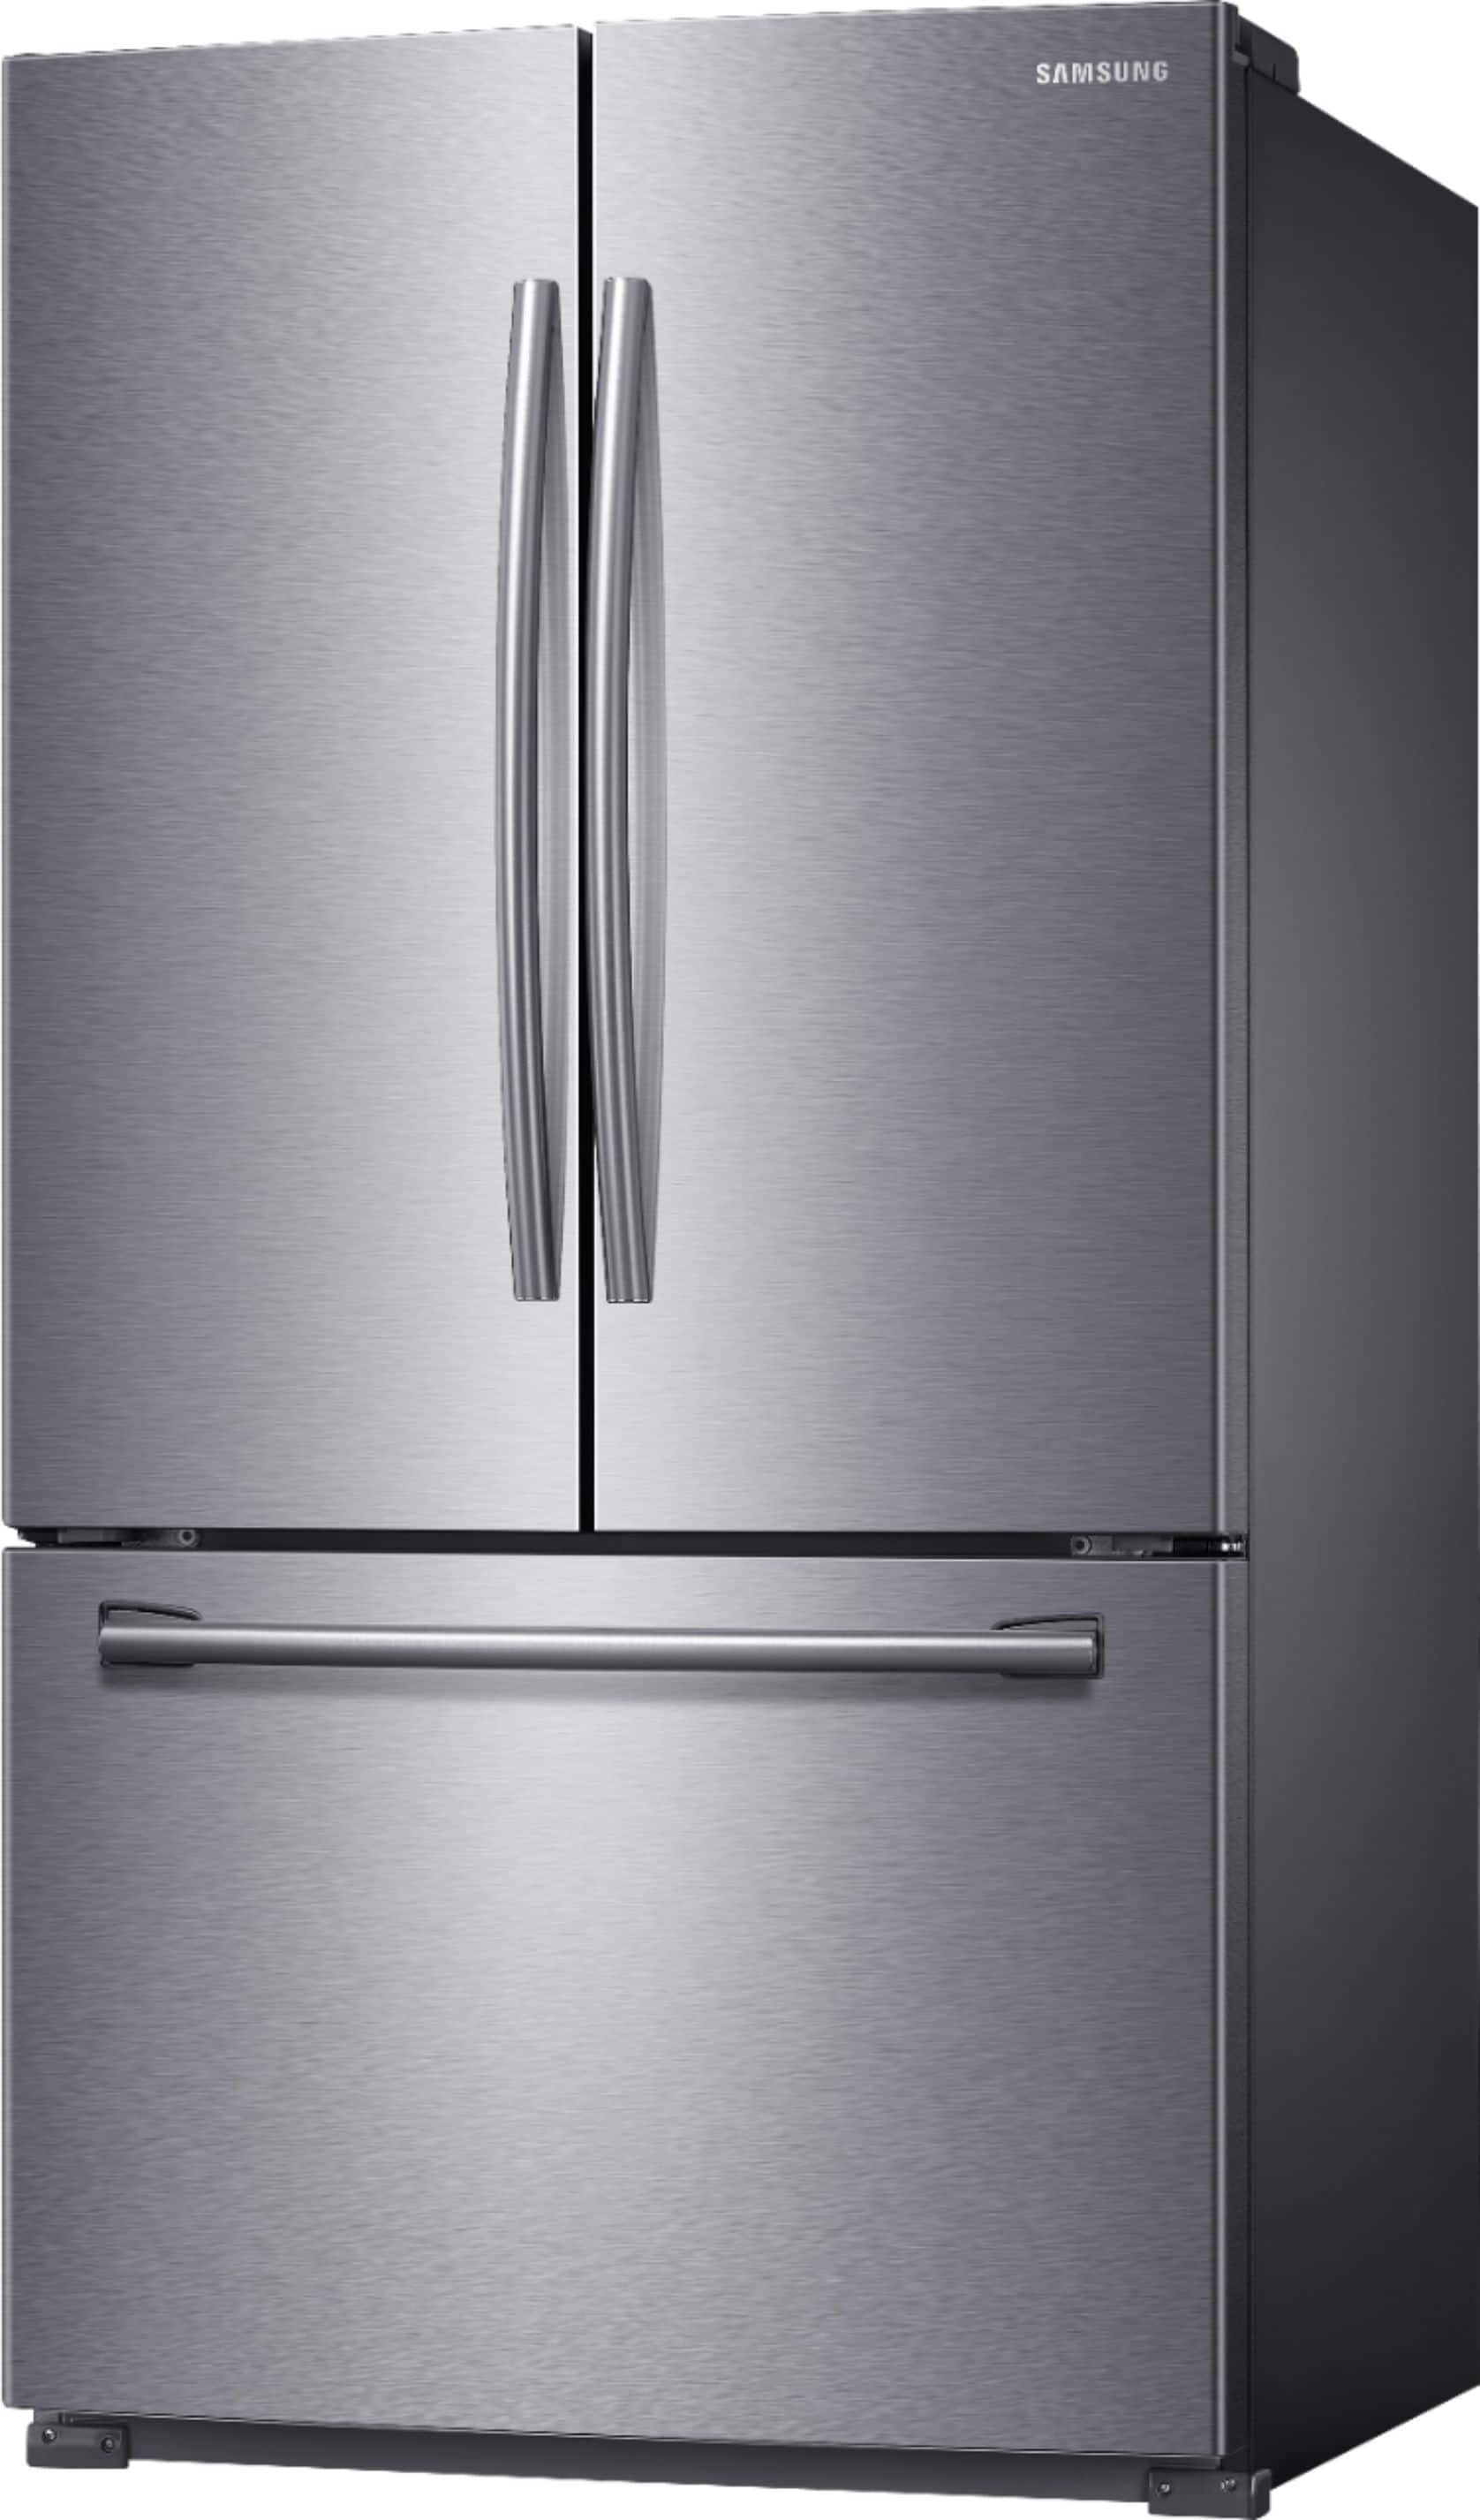 Samsung - 25.5 Cu. Ft. French Door Refrigerator with Filtered Ice Maker - Stainless steel $1098